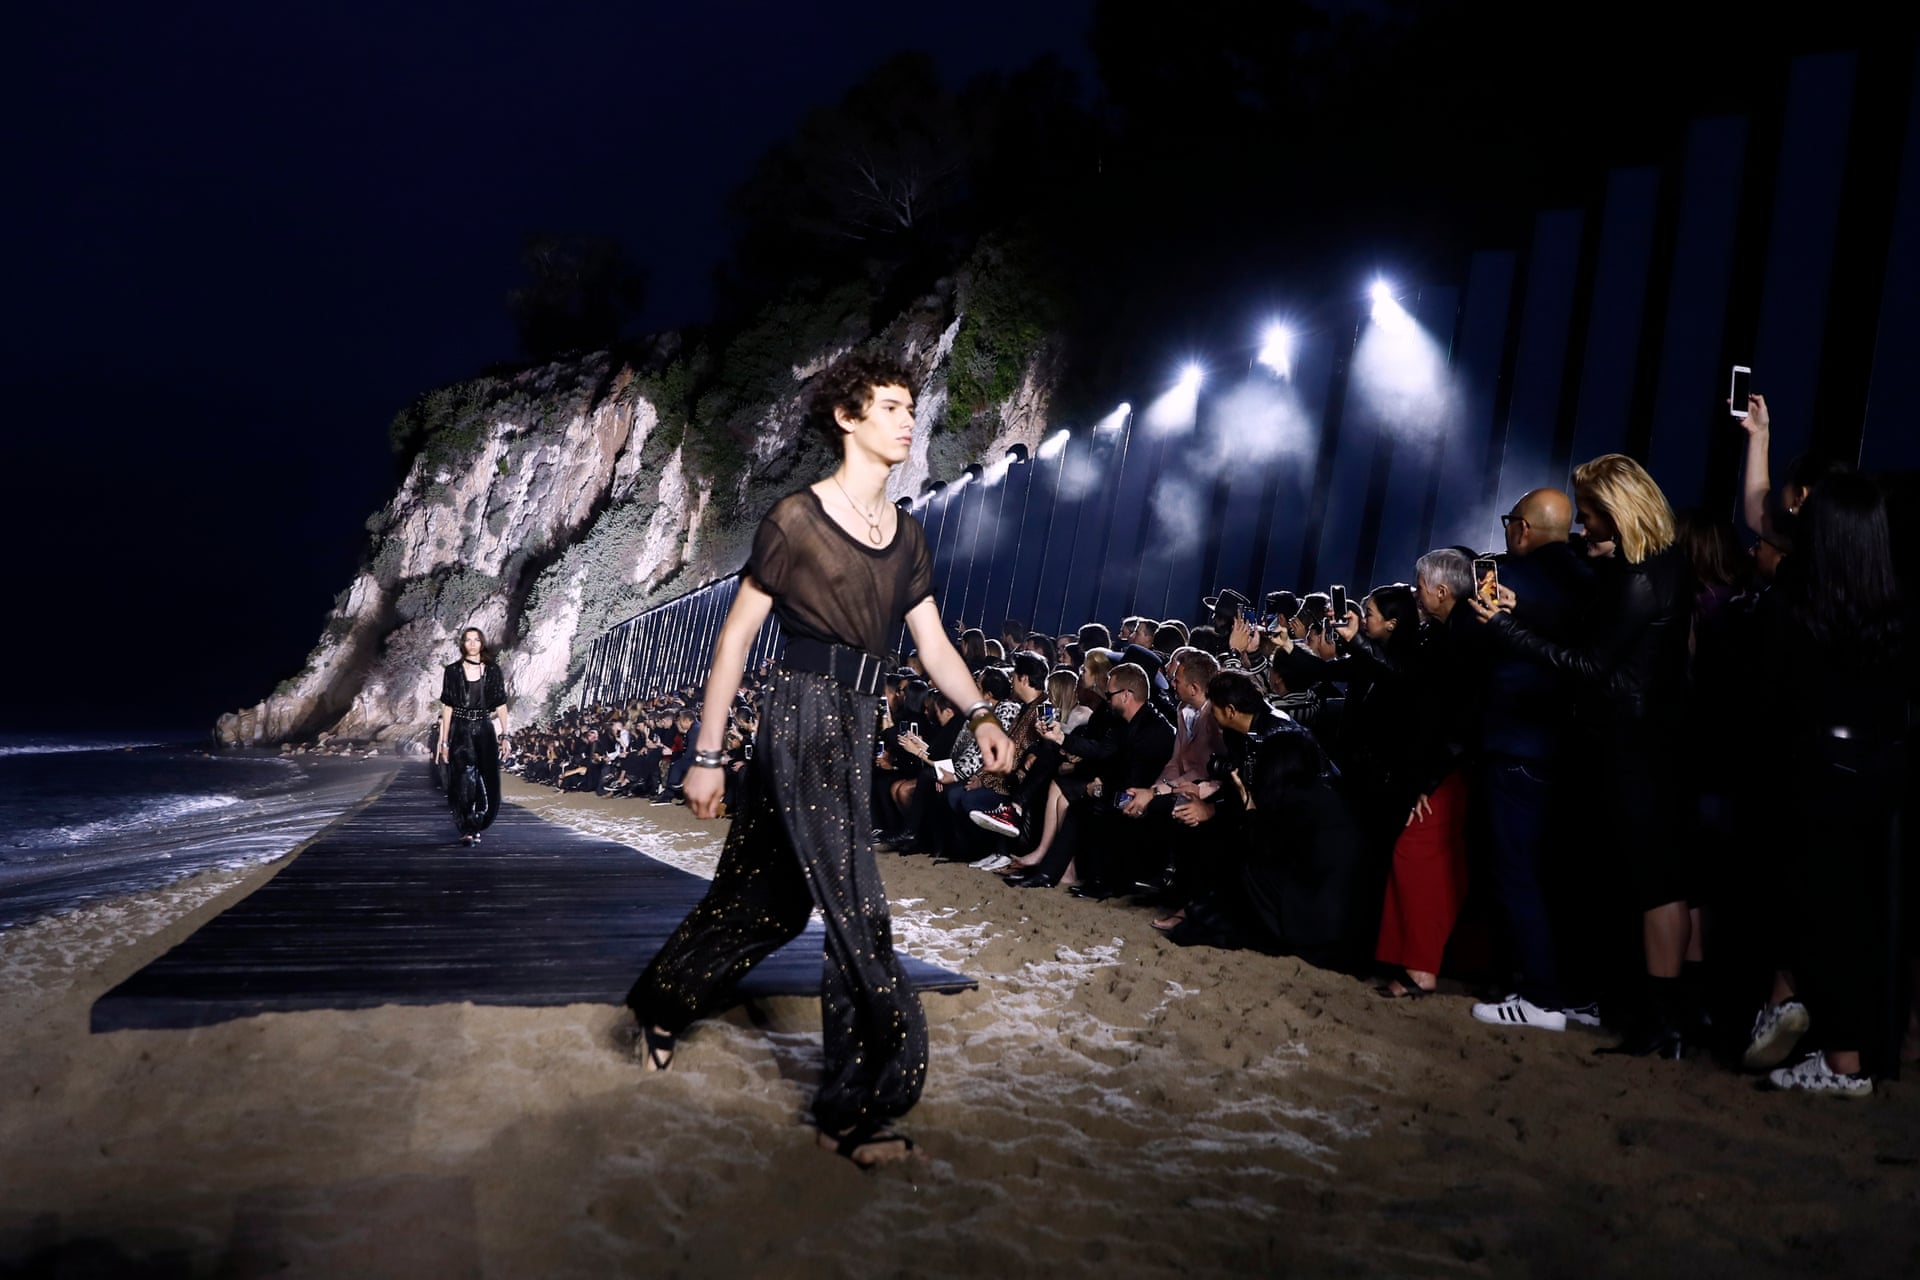 Fashion digest: YSL held show in L.A, Marc Jacobs and Miley teamed up…